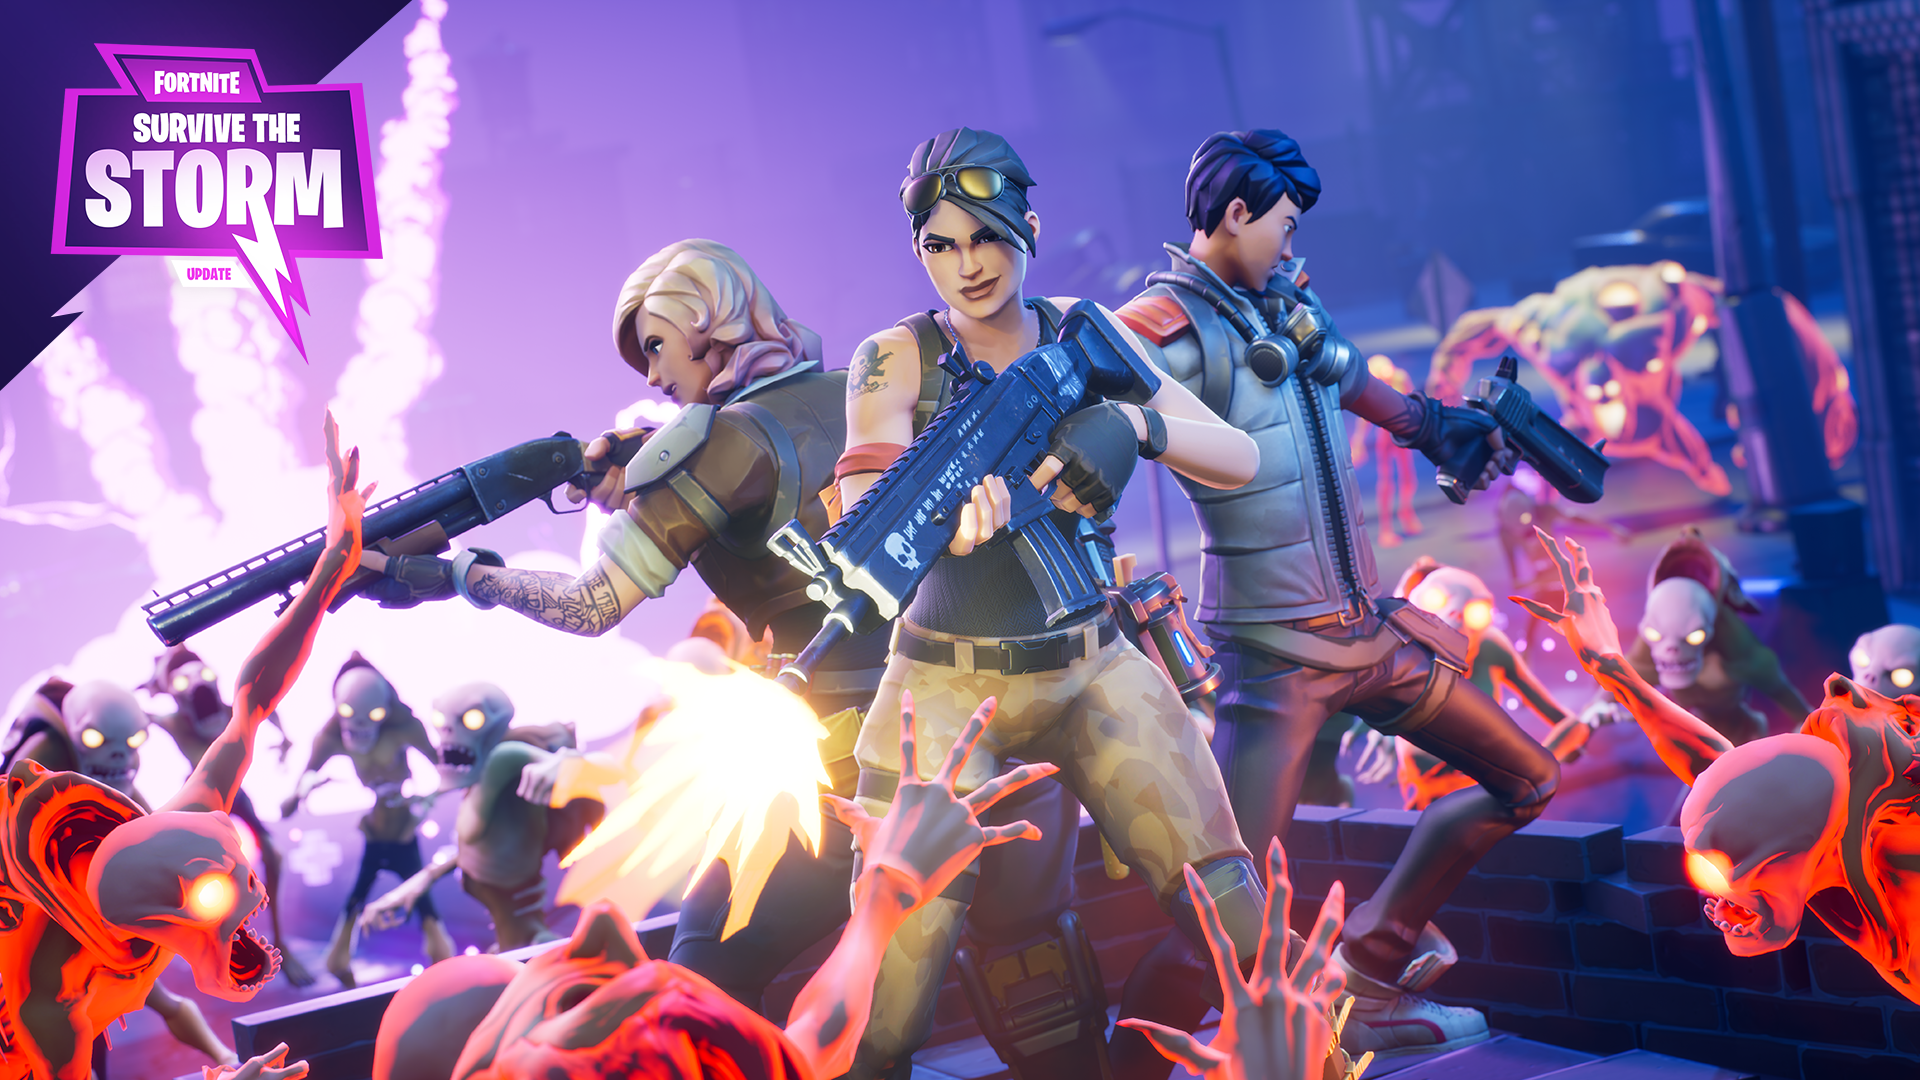 Survive the Storm Update - 1 5 Patch Notes